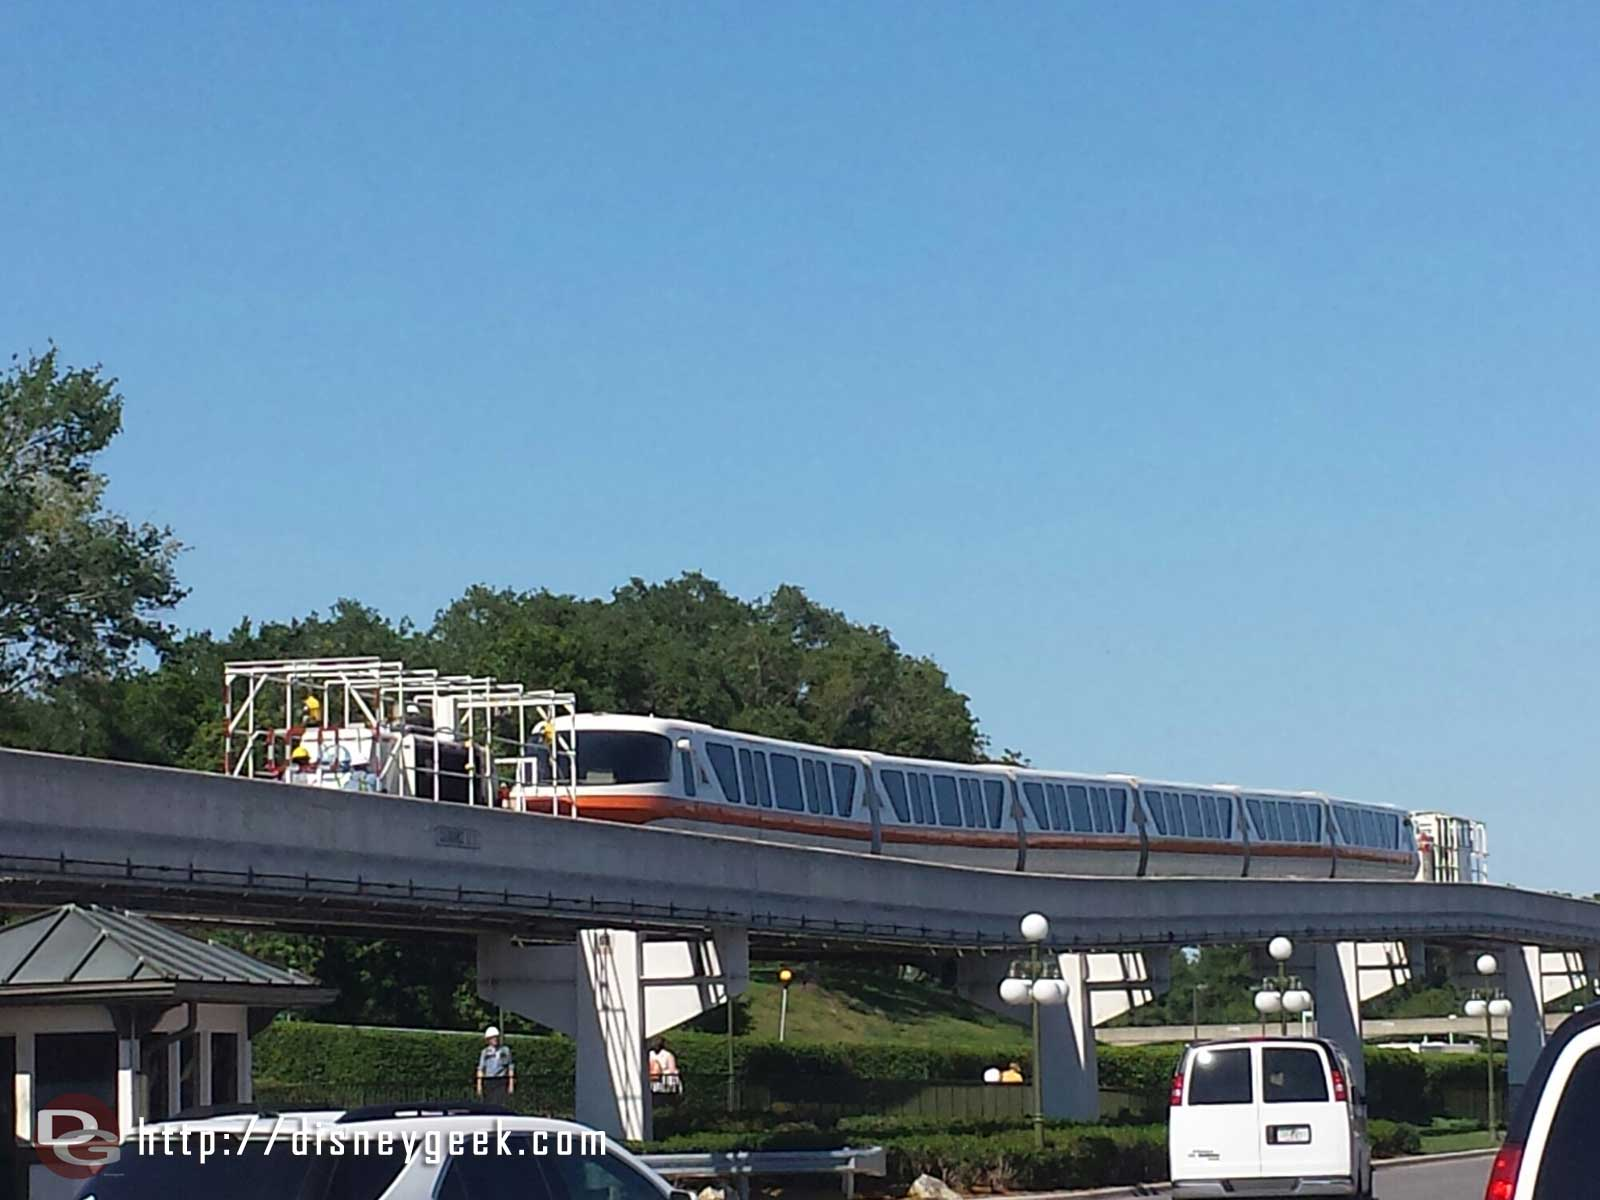 Monorail Orange being towed/pushed along the express beam #WDW